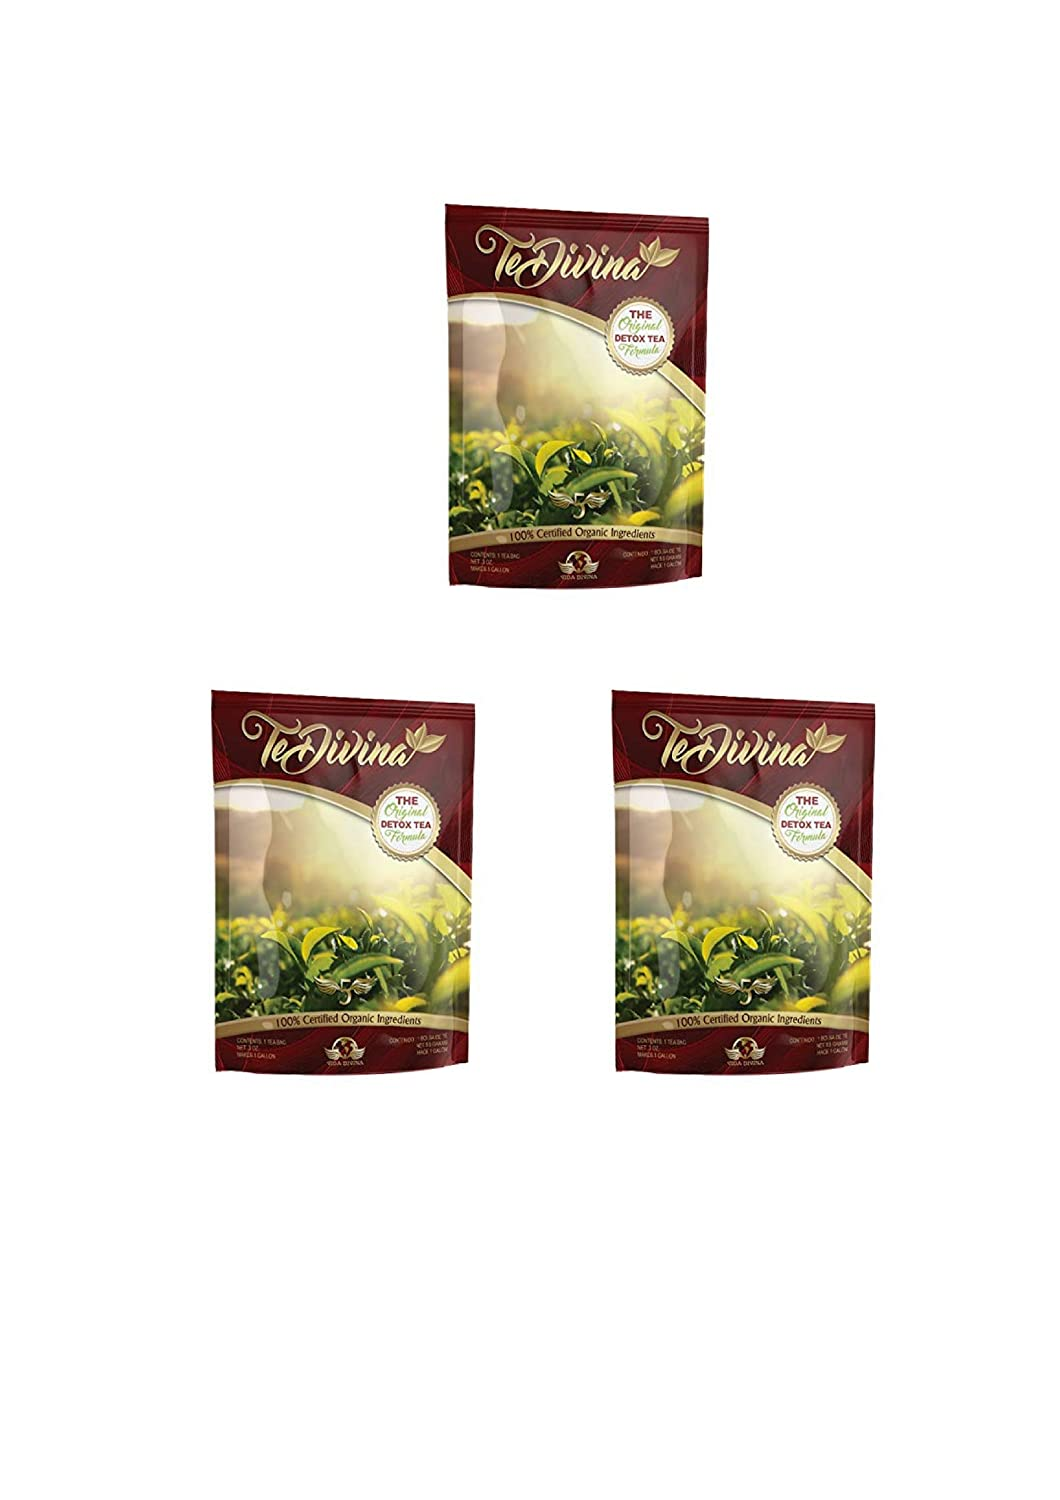 Amazon.com : Te Divina Original Detox Formula for 7 days (3 pack) : Grocery & Gourmet Food